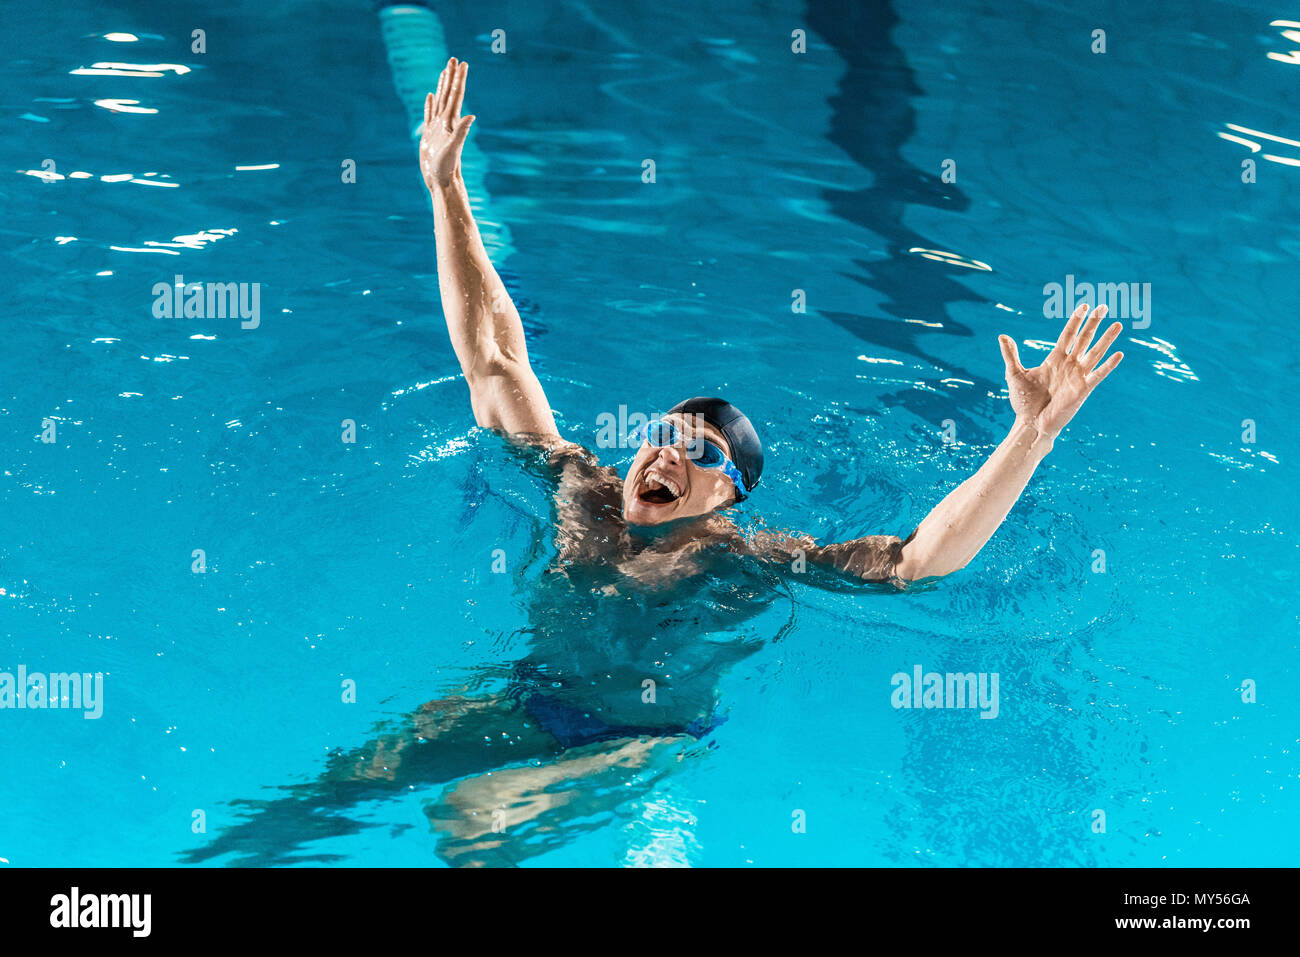 excited swimmer in goggles gesturing in competition swimming pool - Stock Image